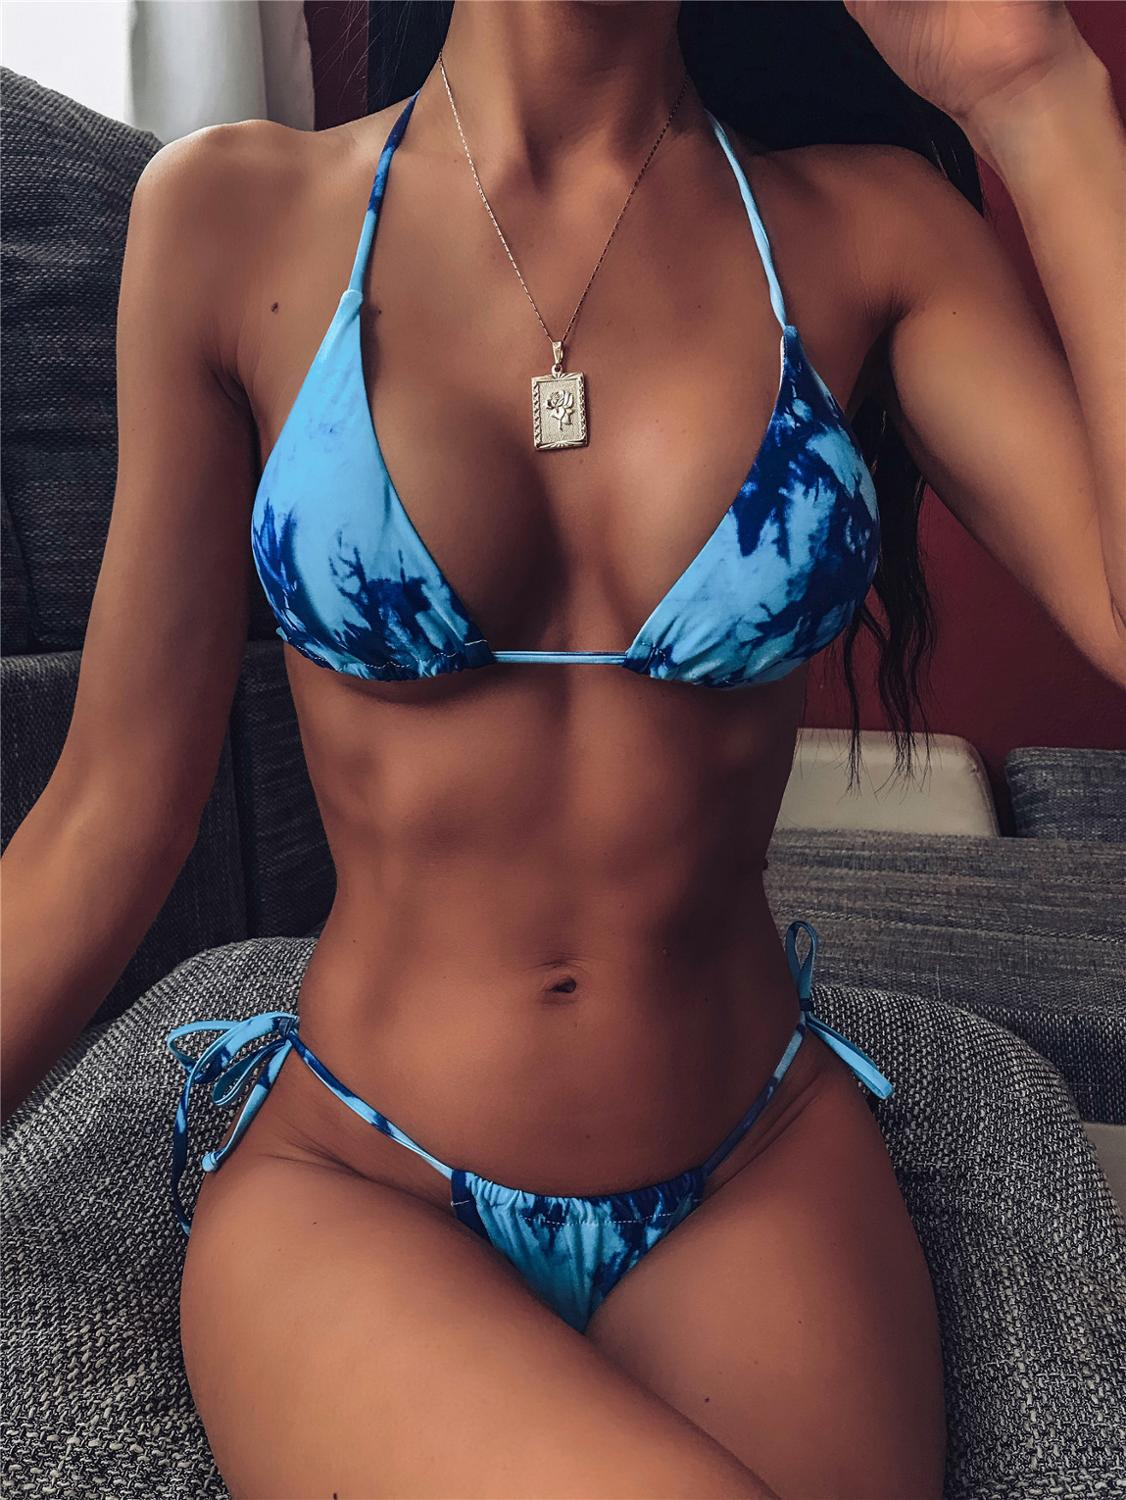 Tie Dye Bikini 2020 Micro Bikini Printed Sexy G String Swimsuit Thong Women African Swimwear Micro Floral Print Bathing Suits